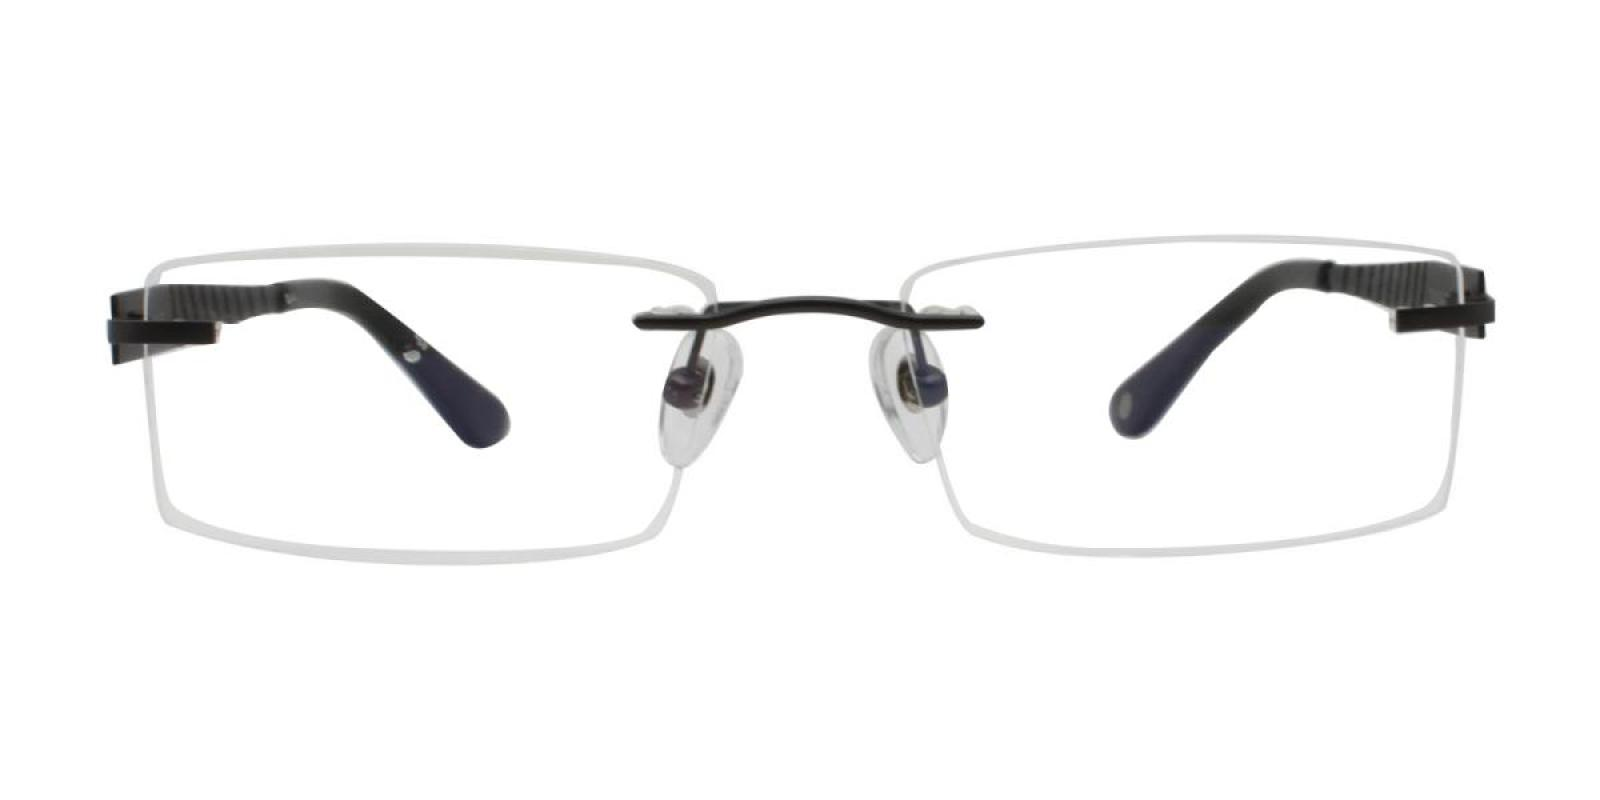 Blaymond-Gun-Varieties-Titanium-Eyeglasses-additional2